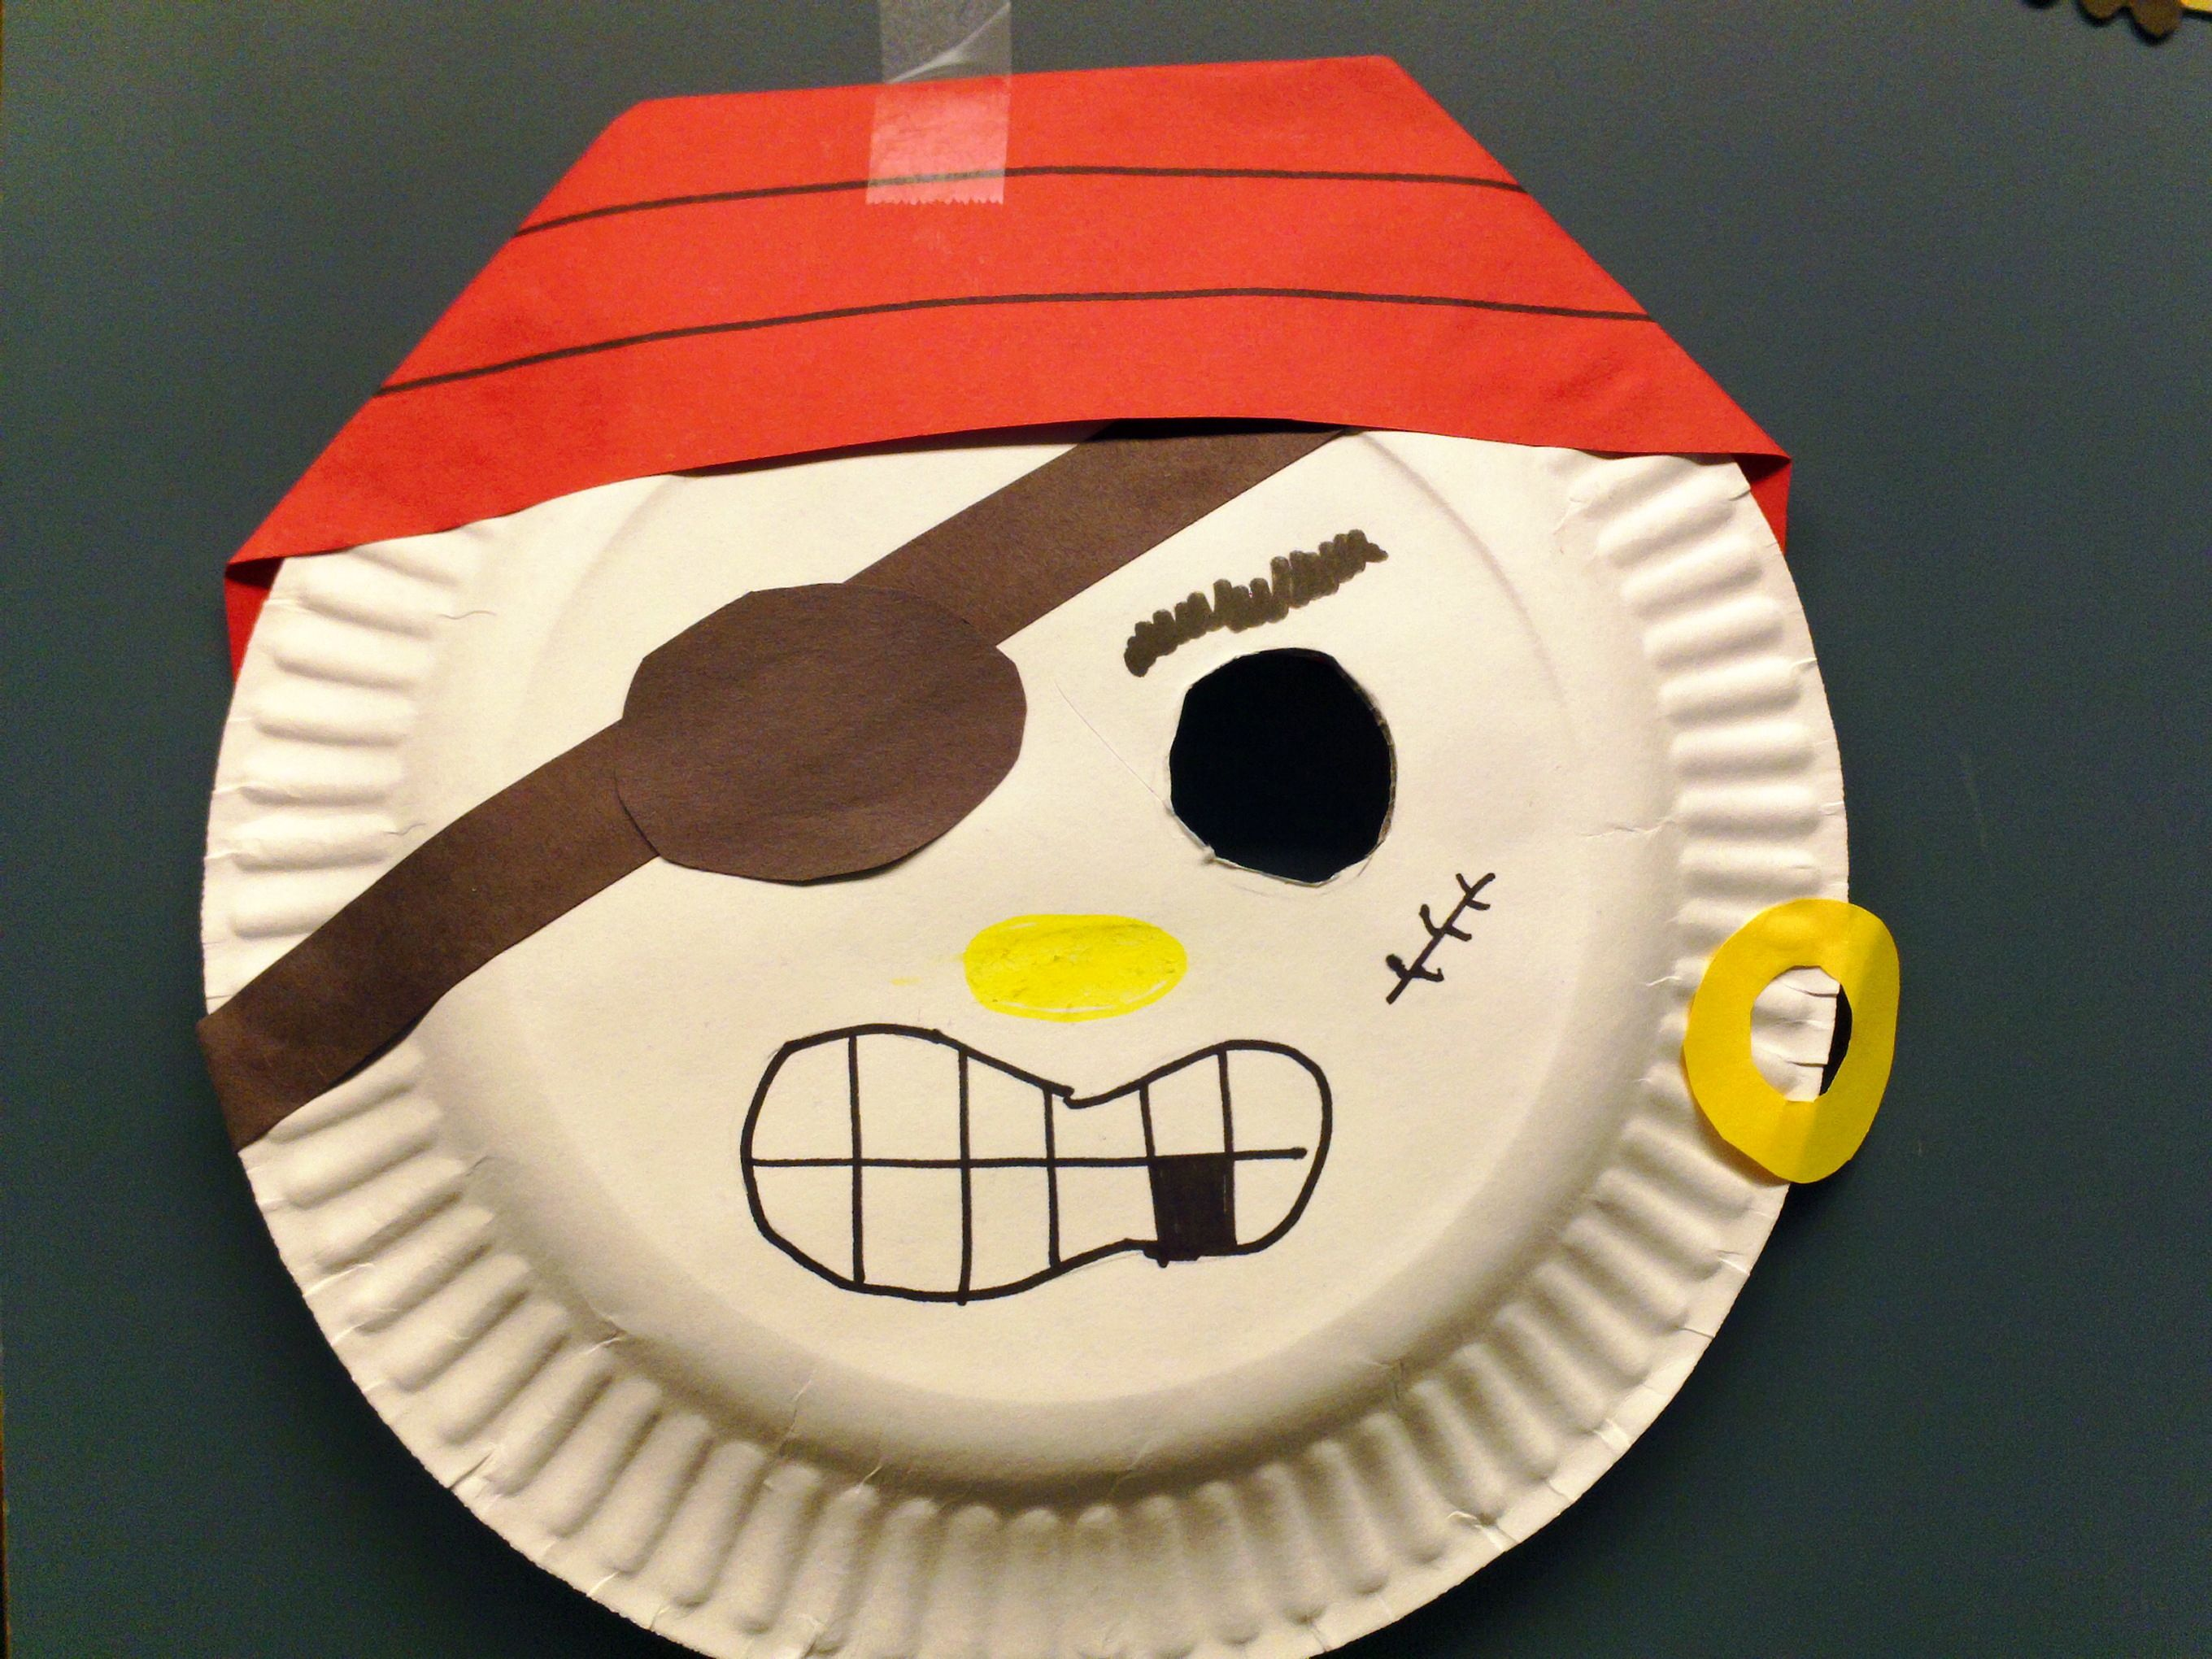 Pirate mask. Ages 5+. Precut an eyehole out of the paper plate. & Pirate mask. Ages 5+. Precut an eyehole out of the paper plate ...